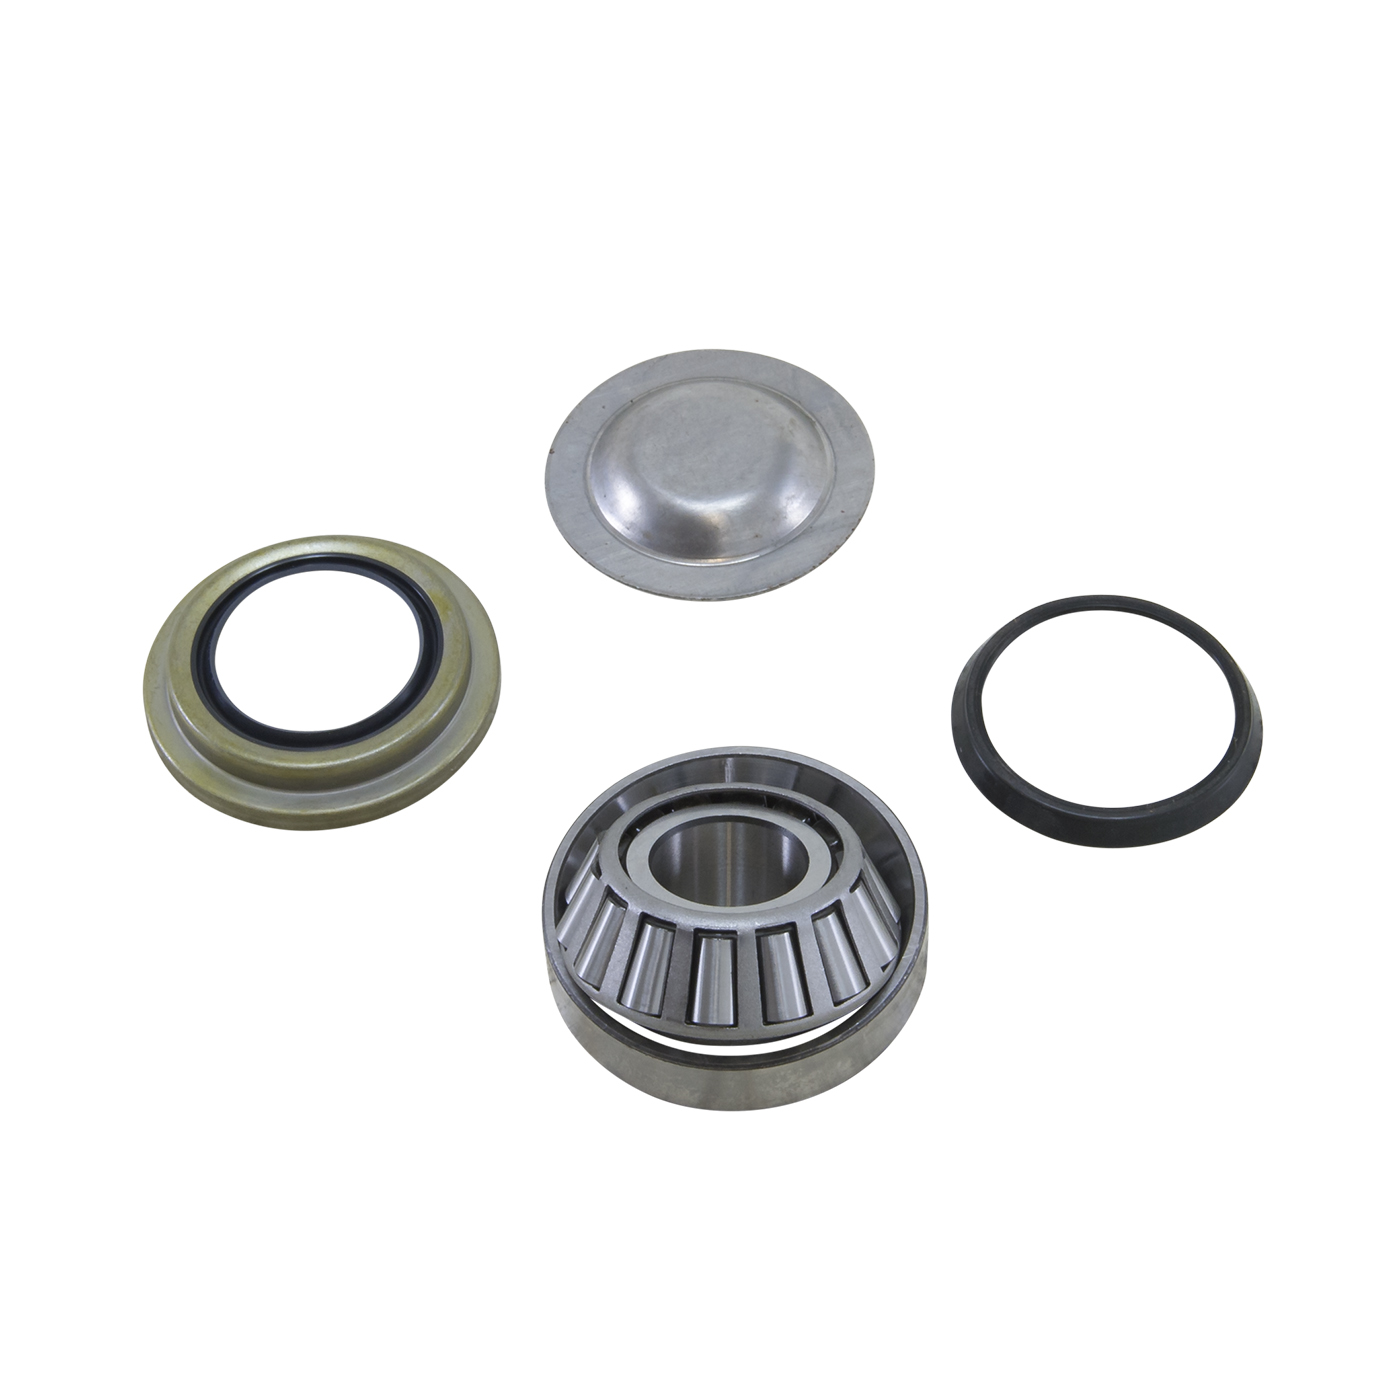 YP KP-002 - Replacement partial king pin kit for Dana 60